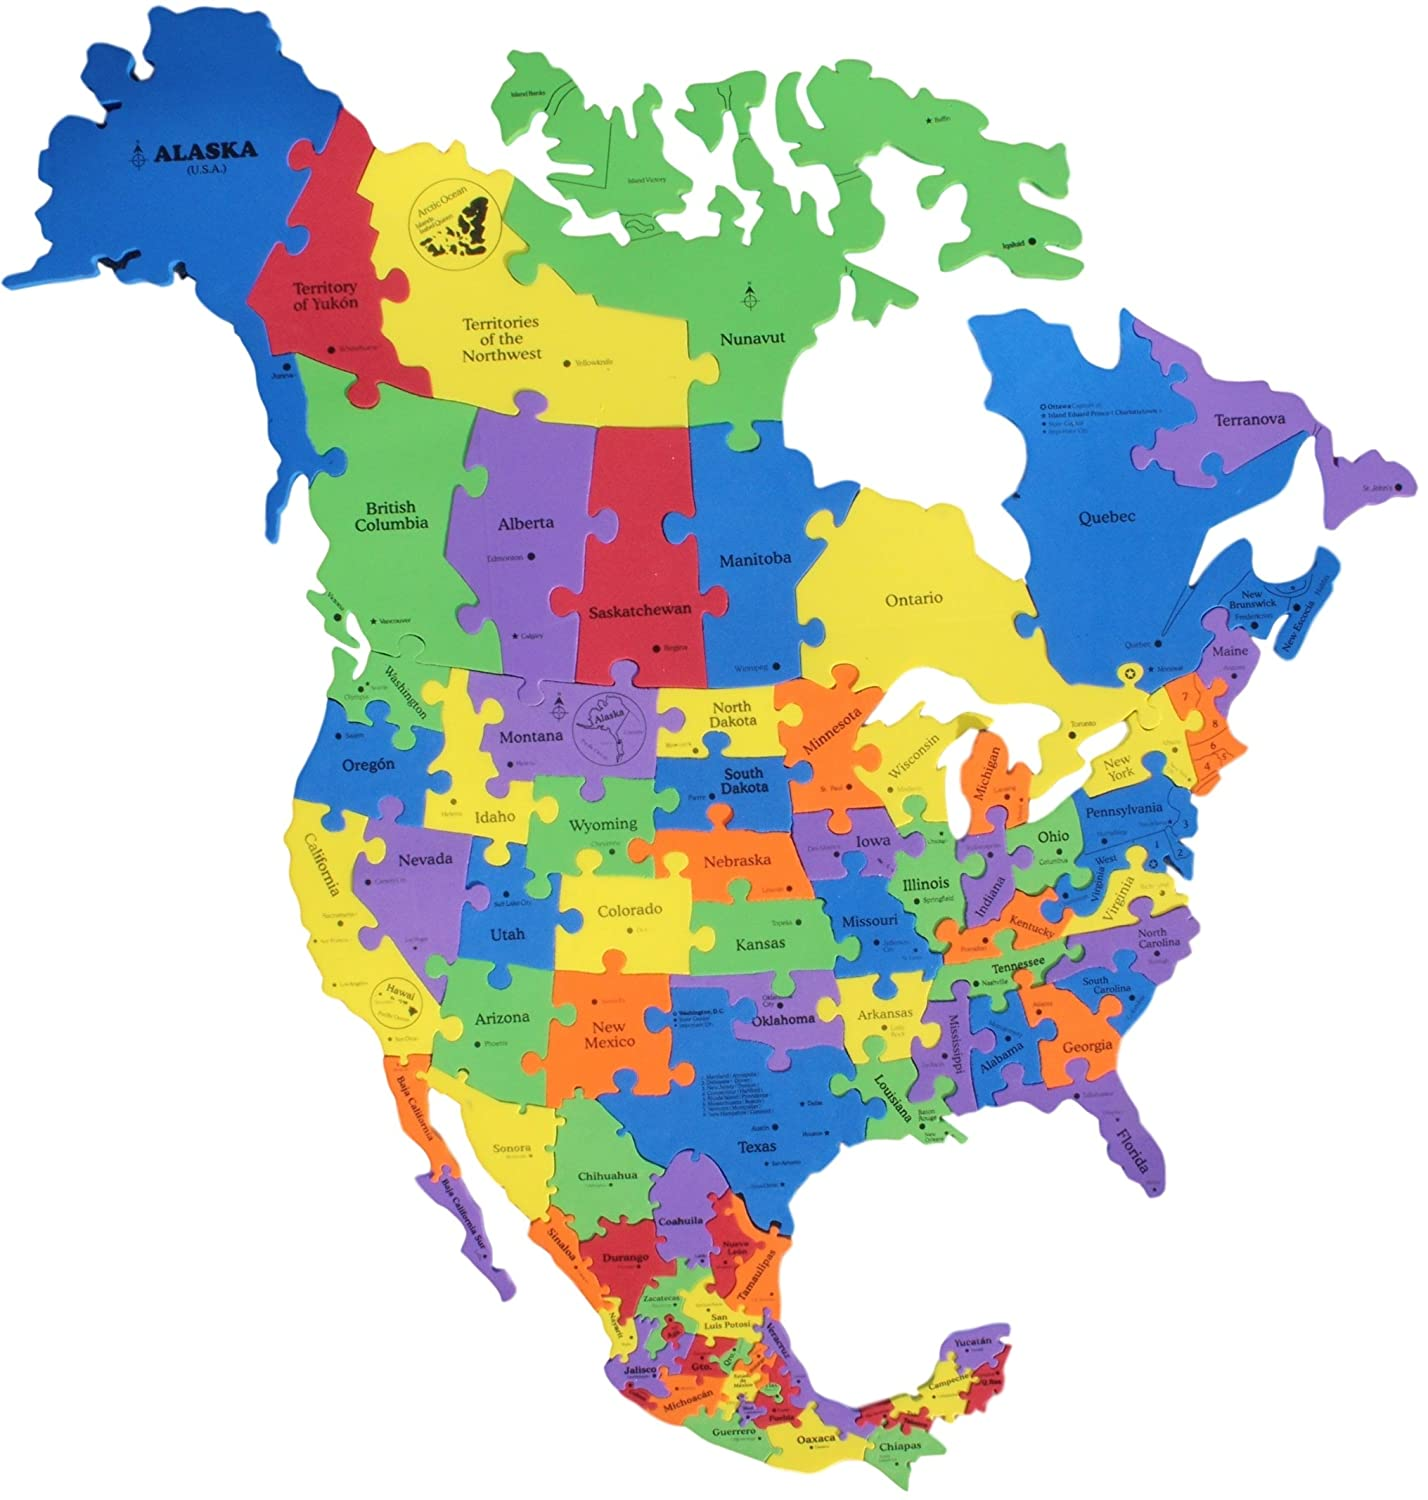 Map Of North America States And Cities.Super Sized North America Foam Map Puzzle 38 X 38 Canada Usa Mexico 82 Pieces States Capitals Big Cities